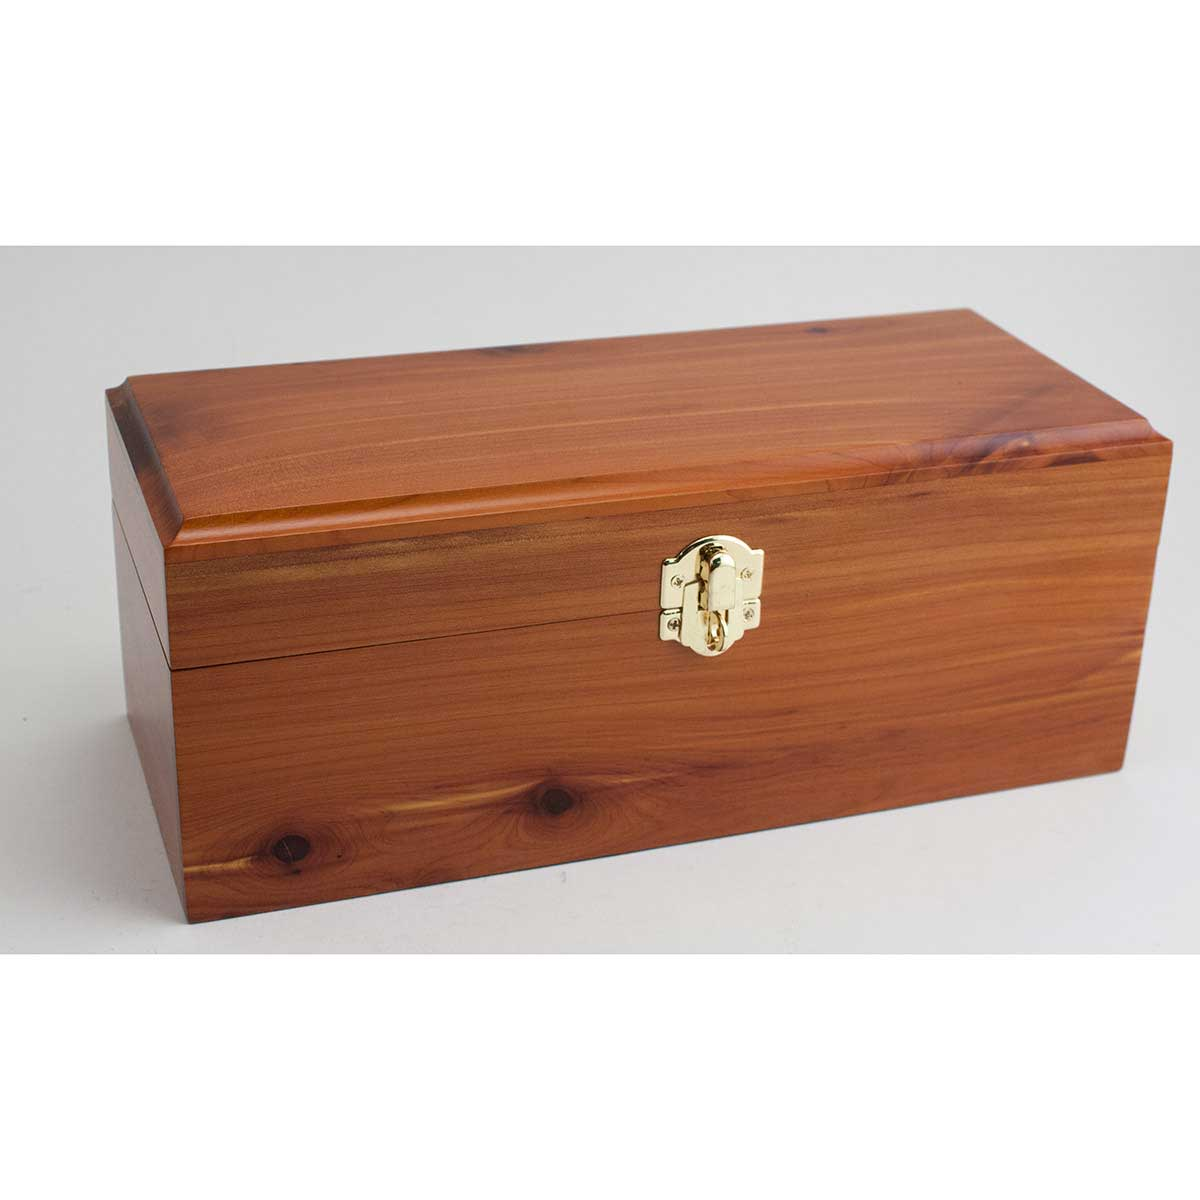 Cedar Wood Pet Urns - Up To 100 Lbs